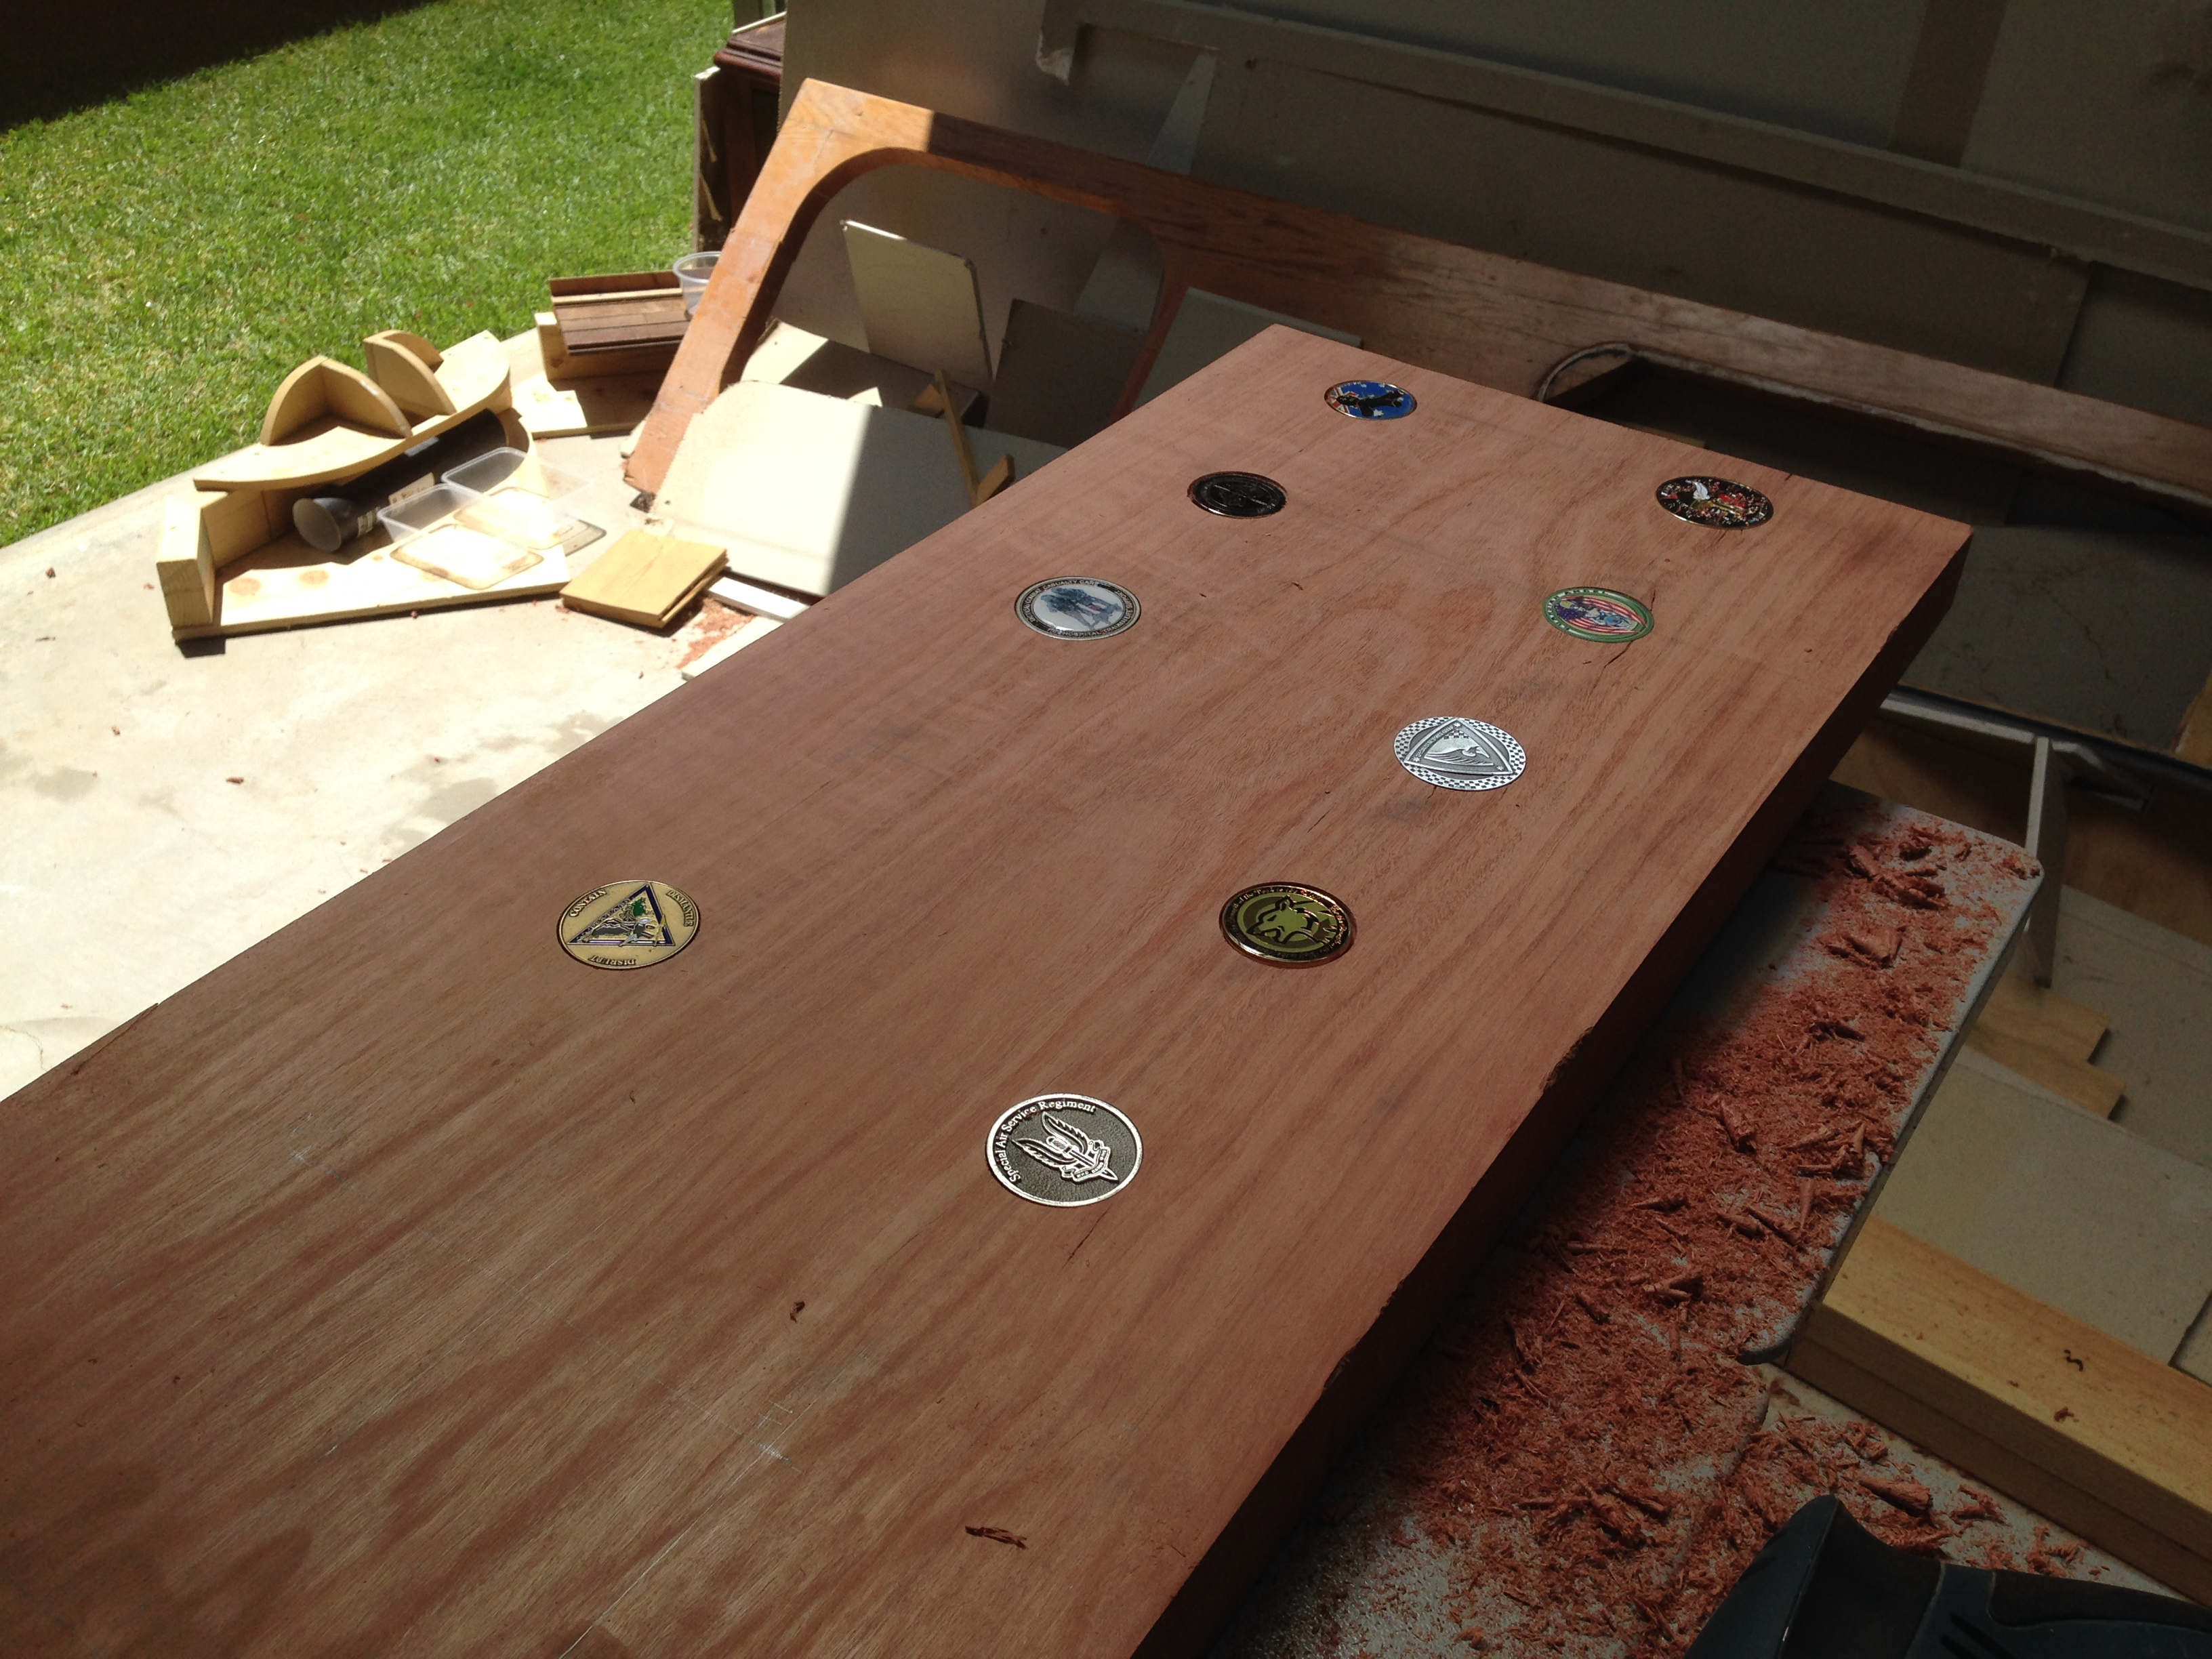 I Certainly Didnu0027t Get All The Holes Perfect, But As I Will Be Covering The Bar  Top With Lacquer, My Plan Will Be To Glue The Coins In Their Holes, ...